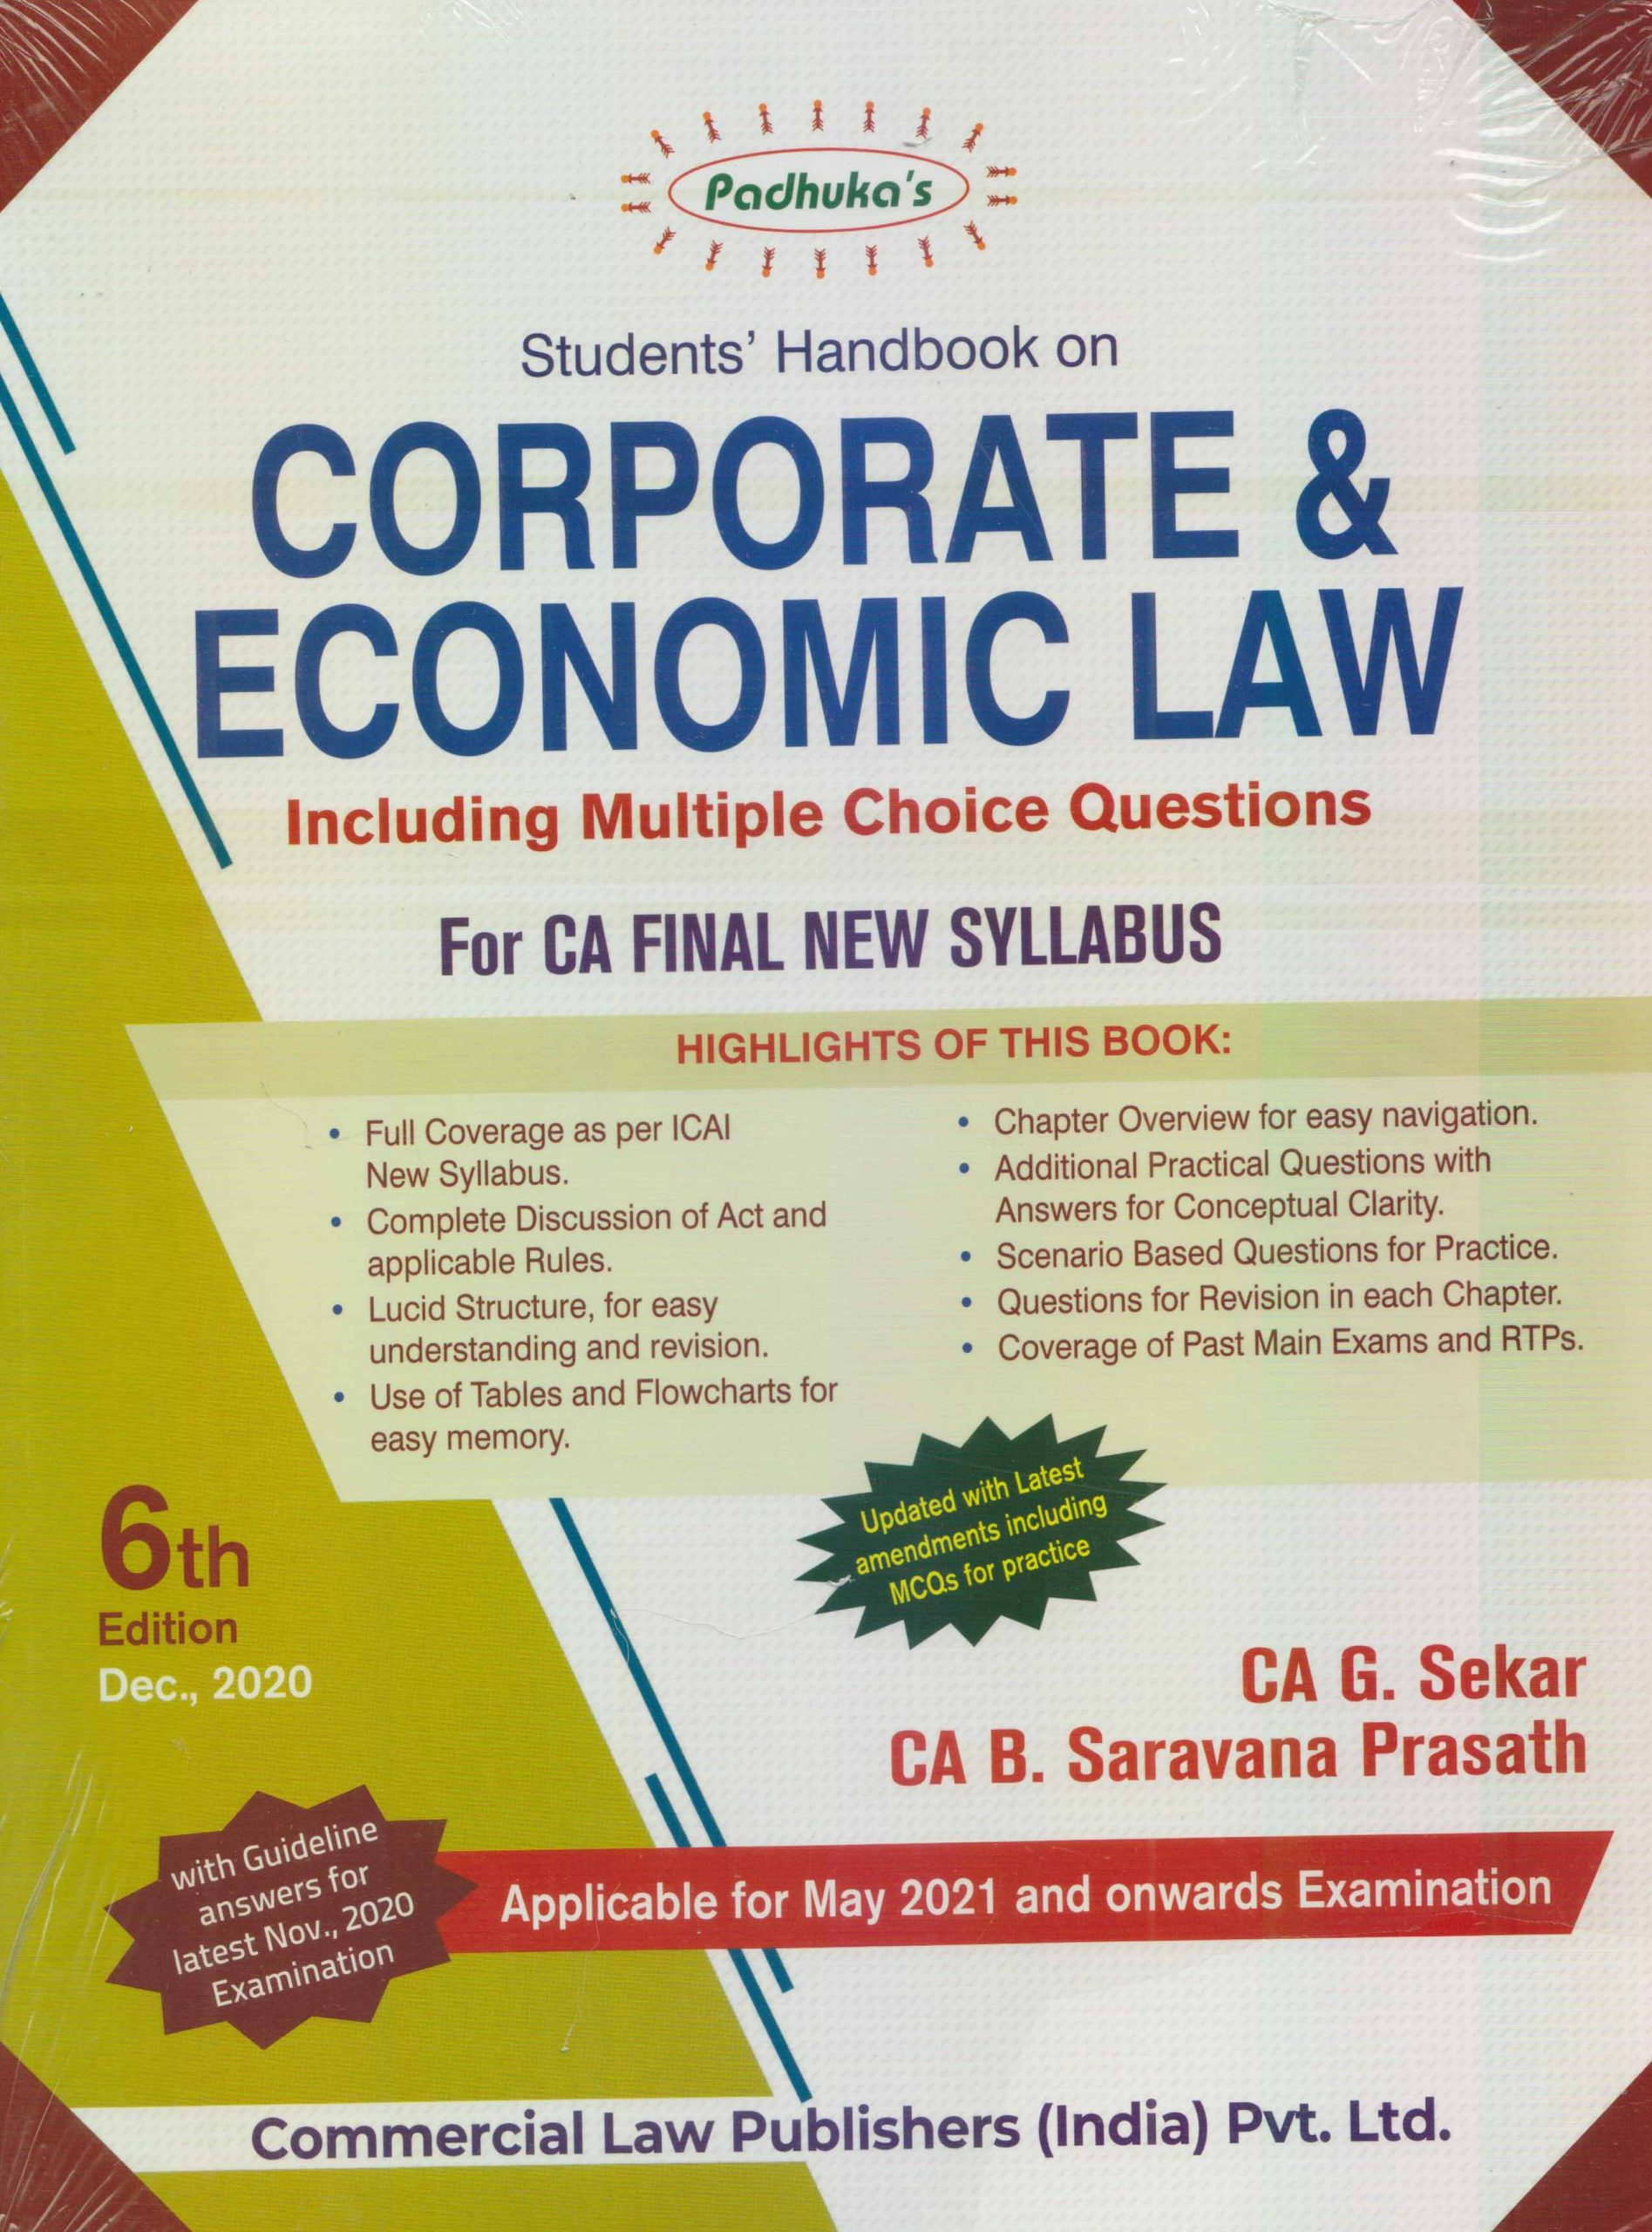 Padhuka Corporate & Economic Law Including Multiple Choice Questions (For CA Final New Syllabus) Applicable for May 2021 and onwards Examination by CA G. Sekar & CA B. Saravana Prasath (Commercial law publishers) for 2021 Exam